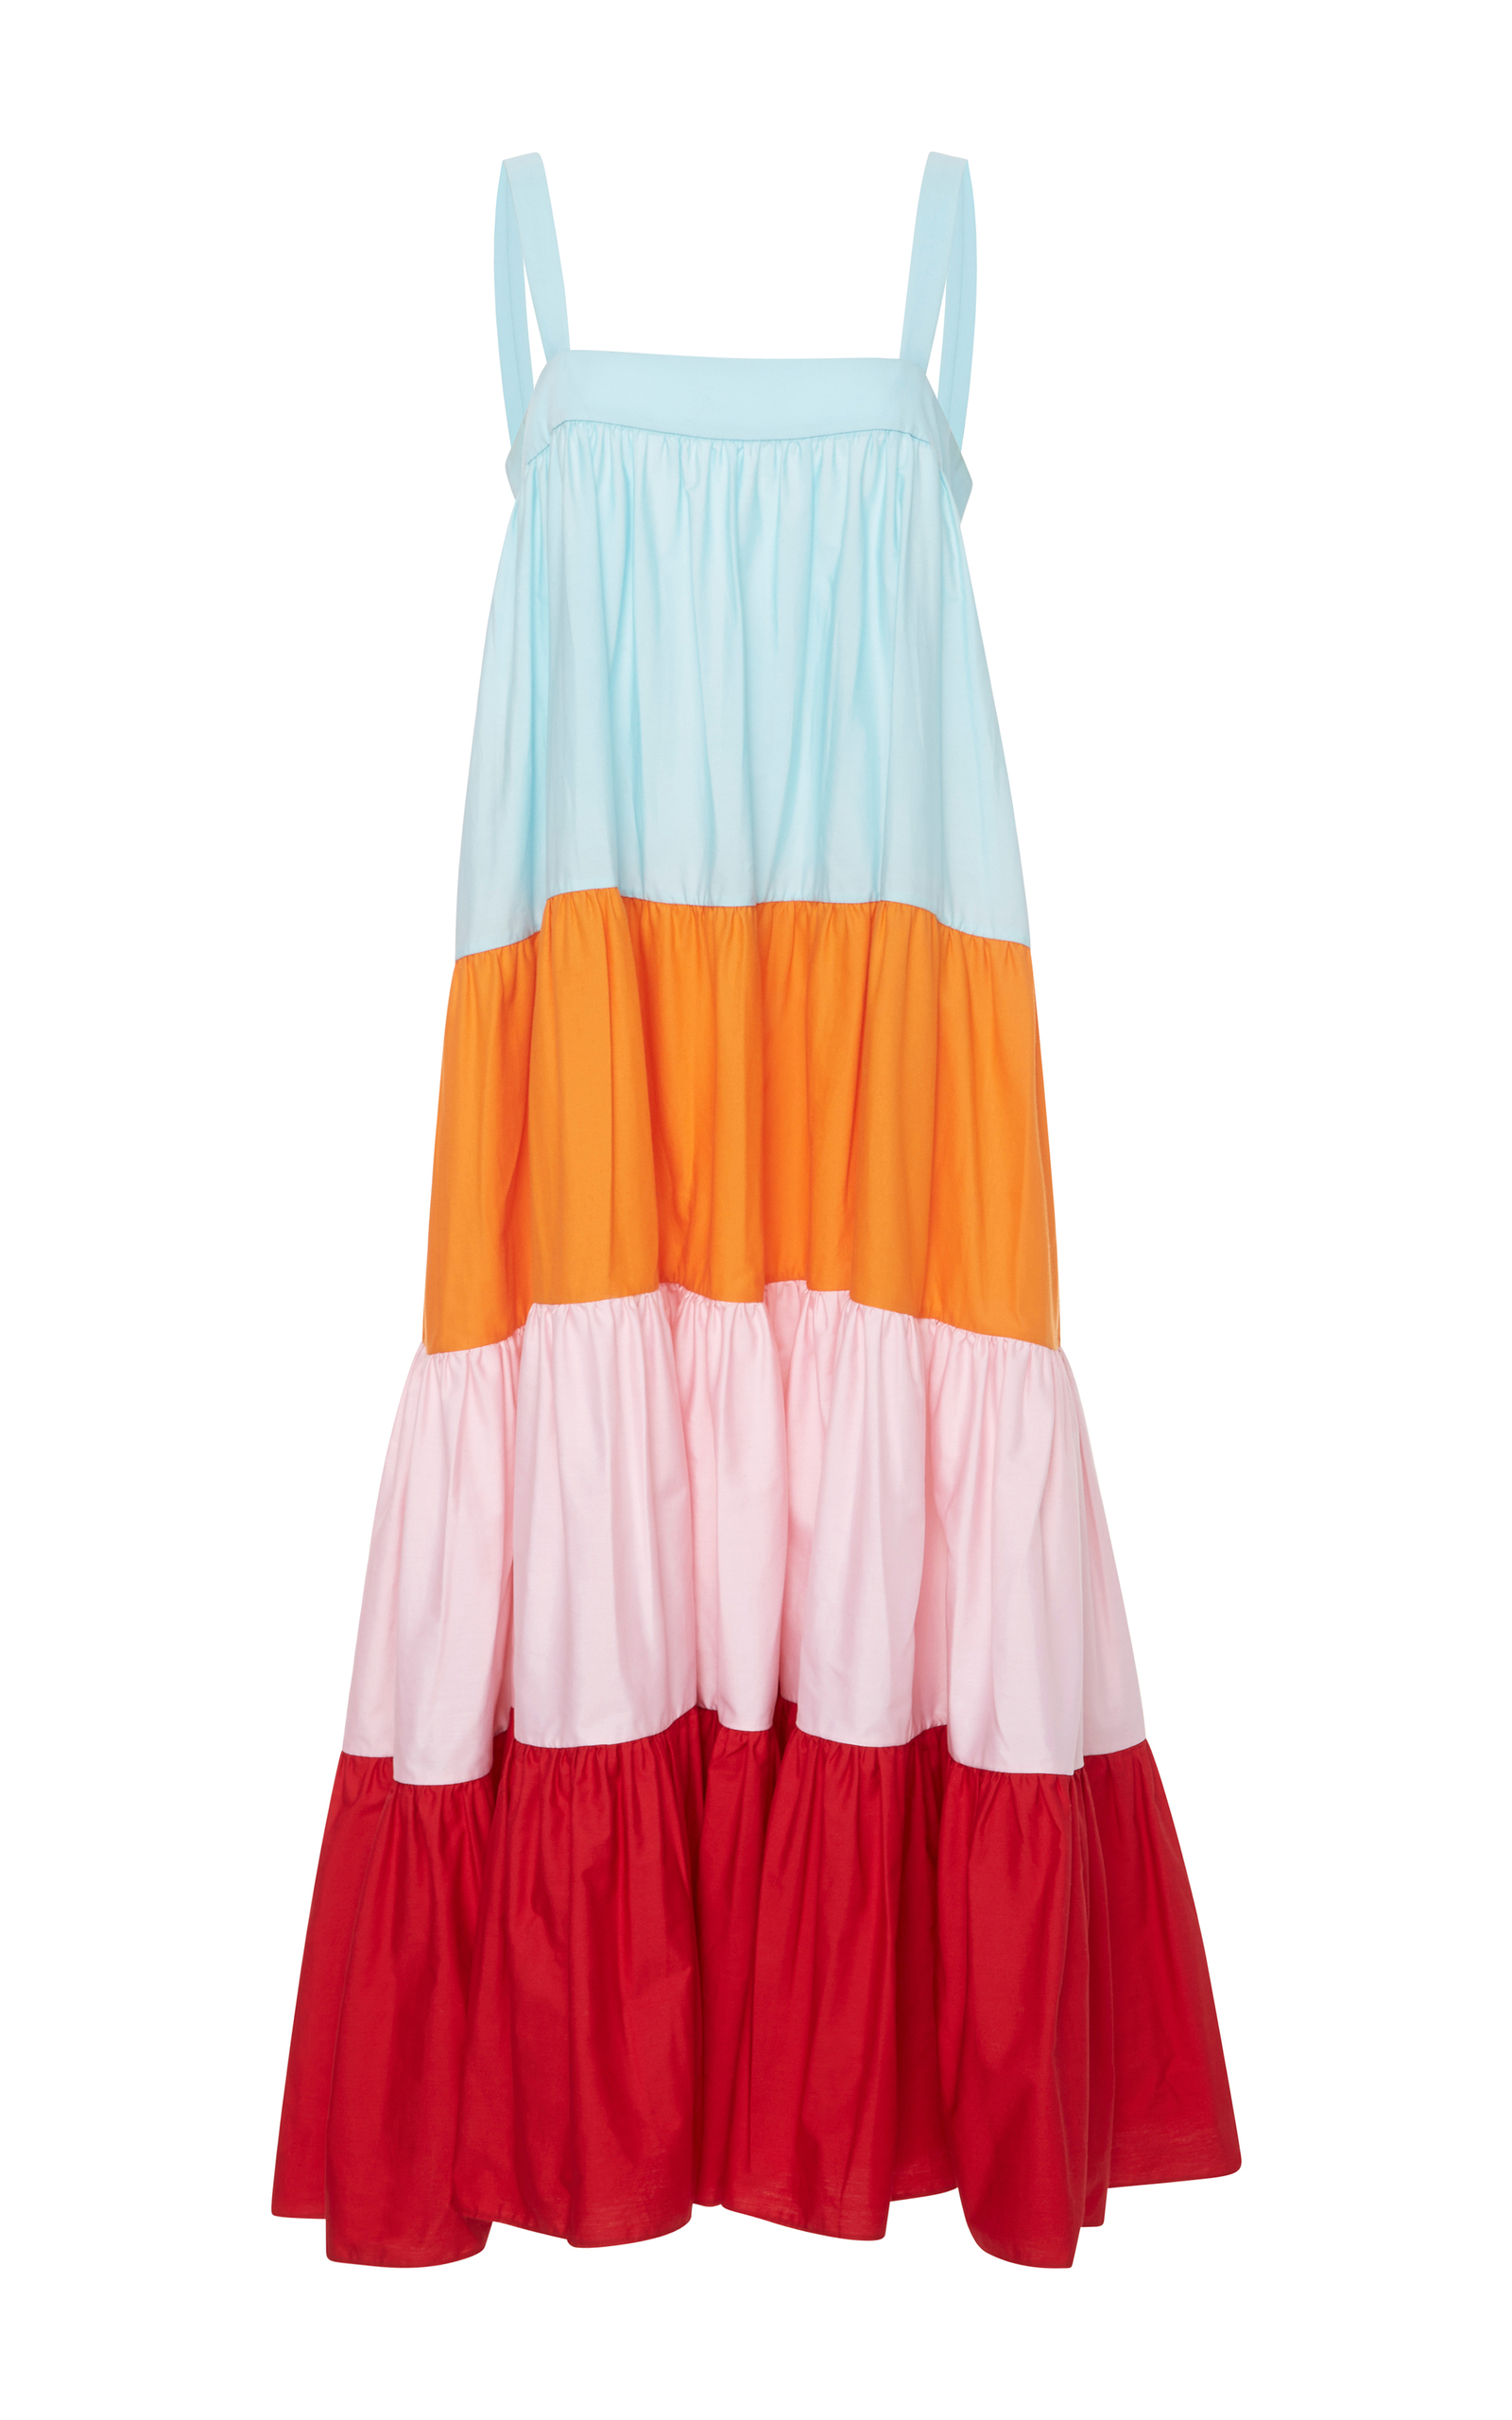 677490d3474 MDS StripesWyatt Colorblock Tiered Maxi Dress. CLOSE. Loading